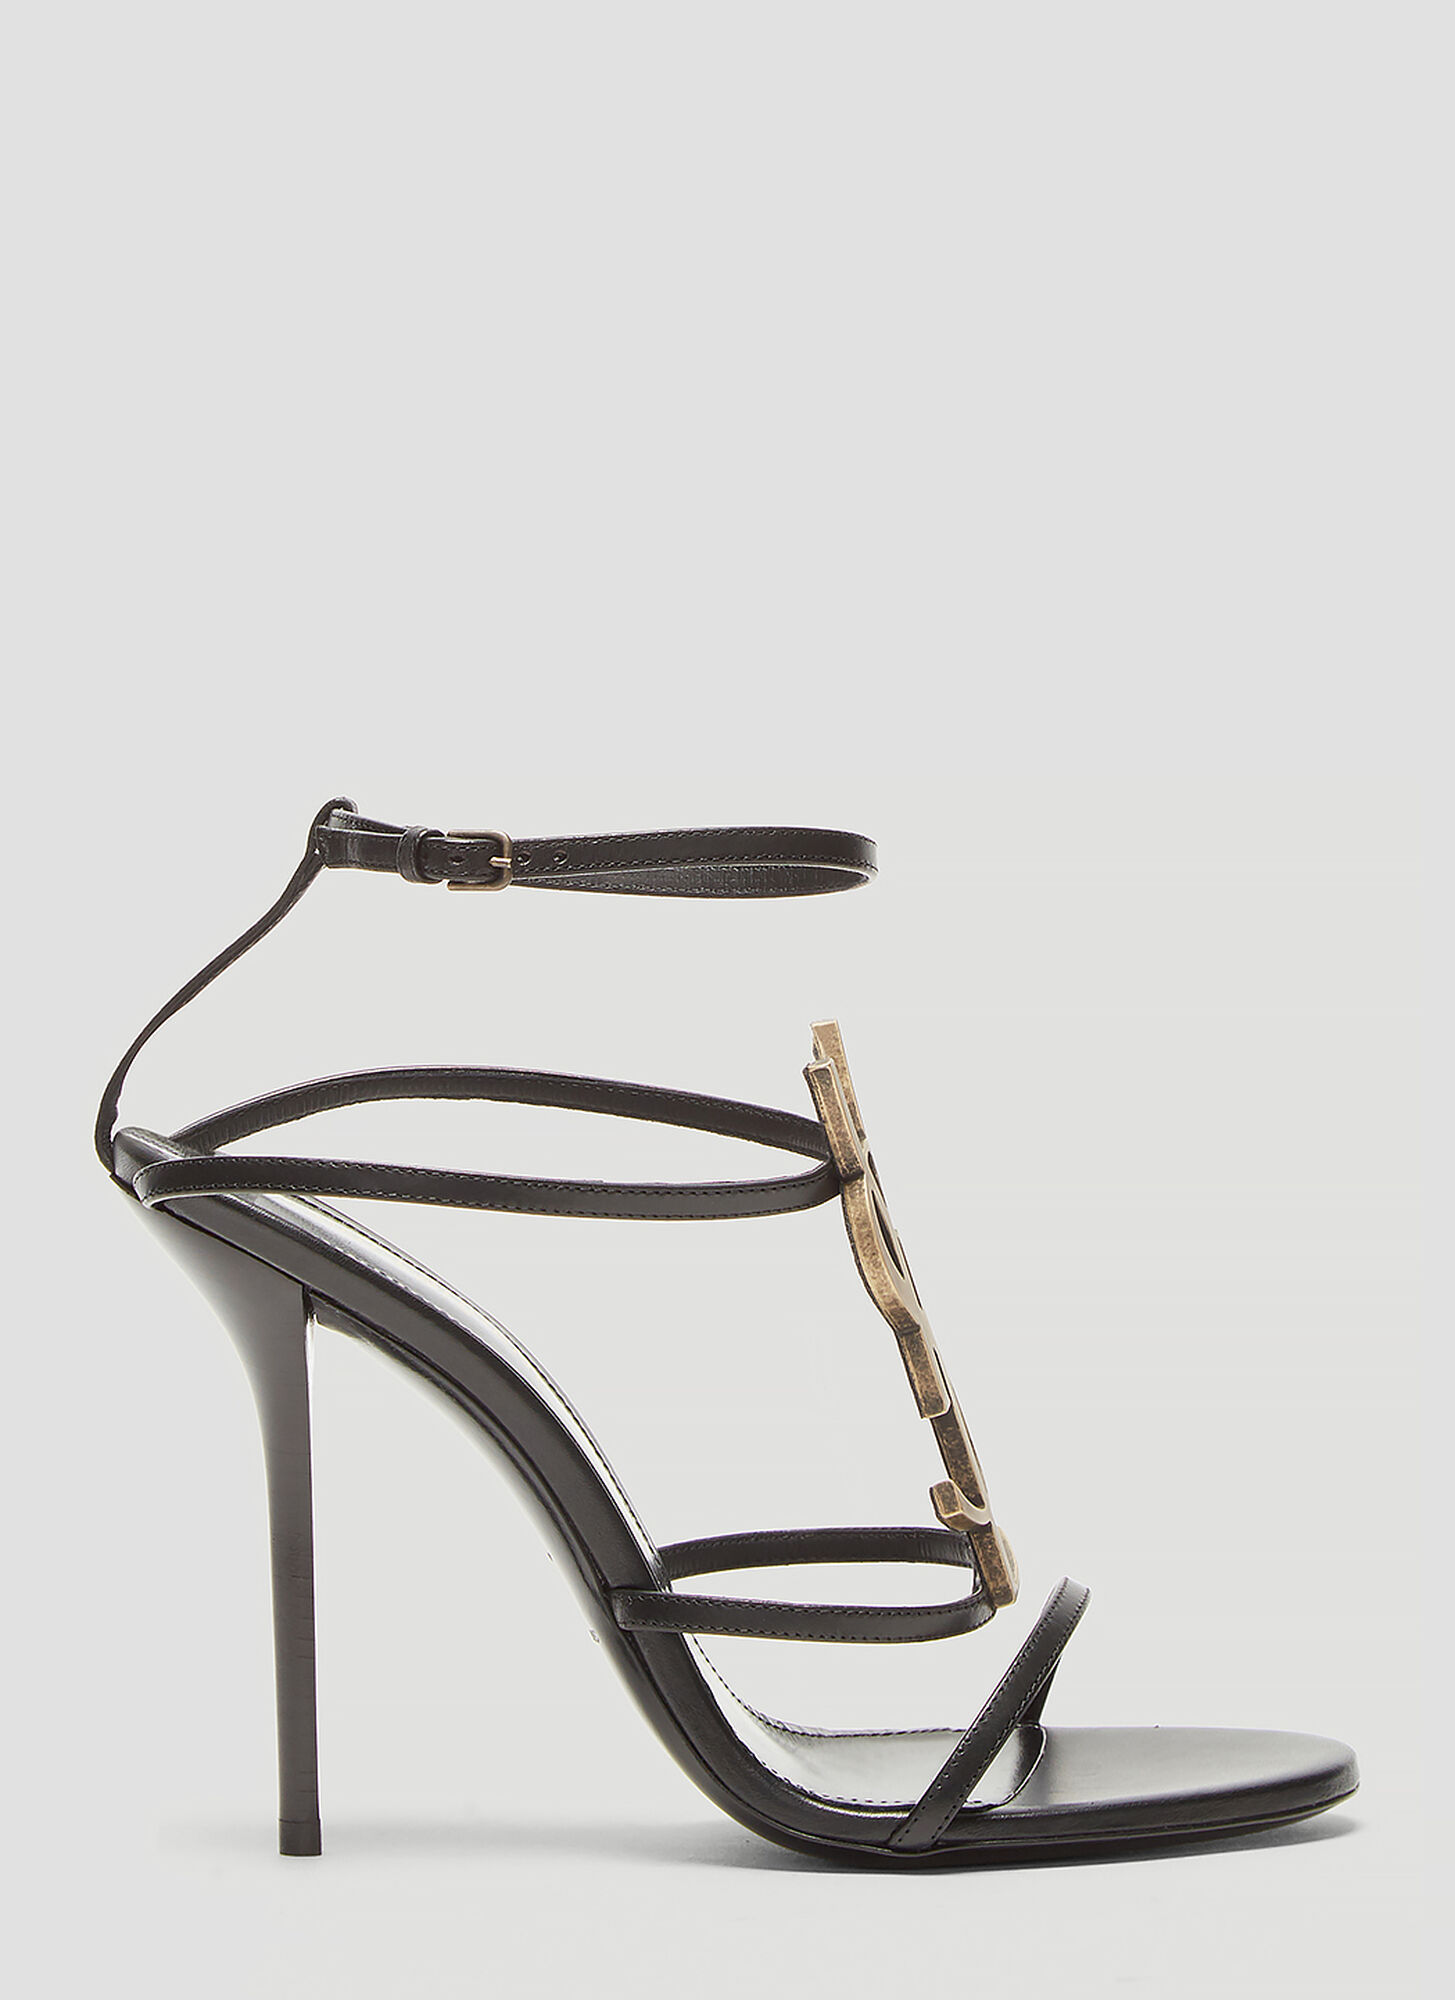 Saint Laurent Cassandra Logo Sandals in Black